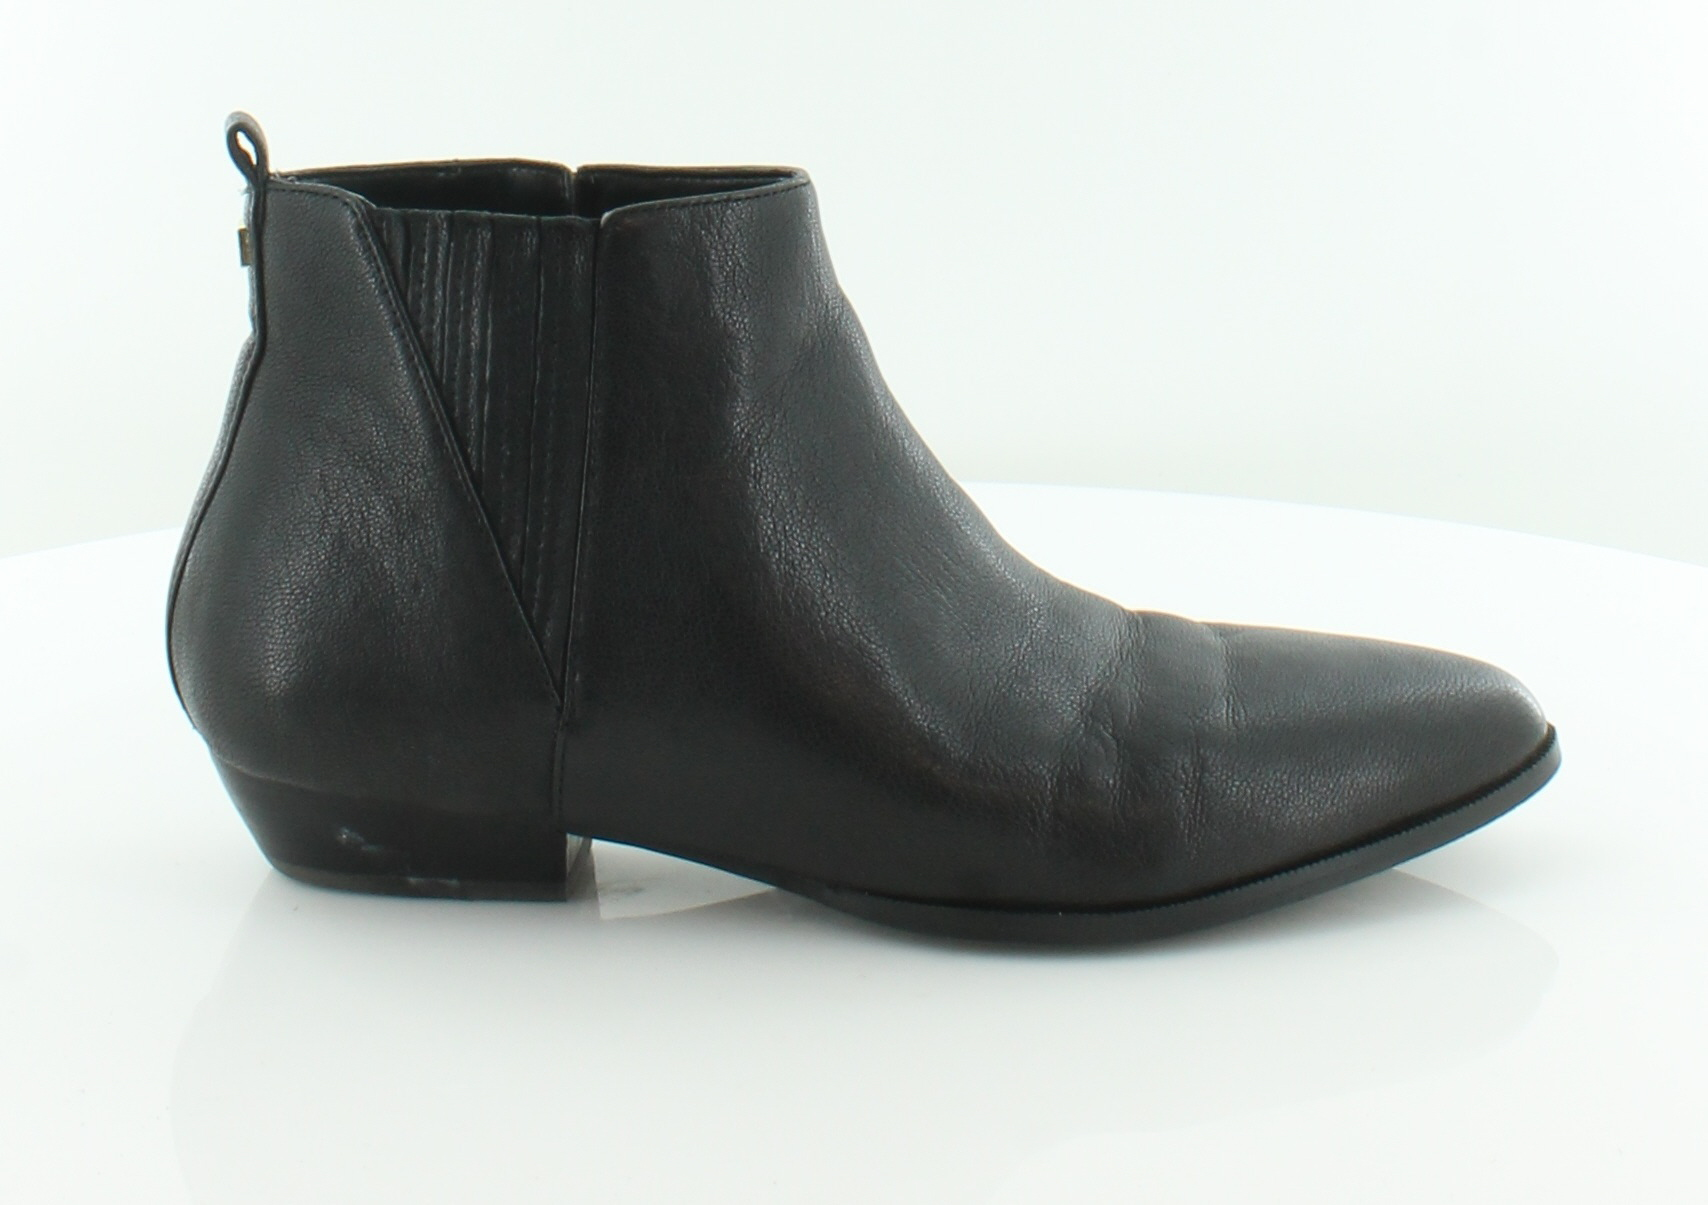 Ivanka Trump Avali Women's Boots Black Size 8 M